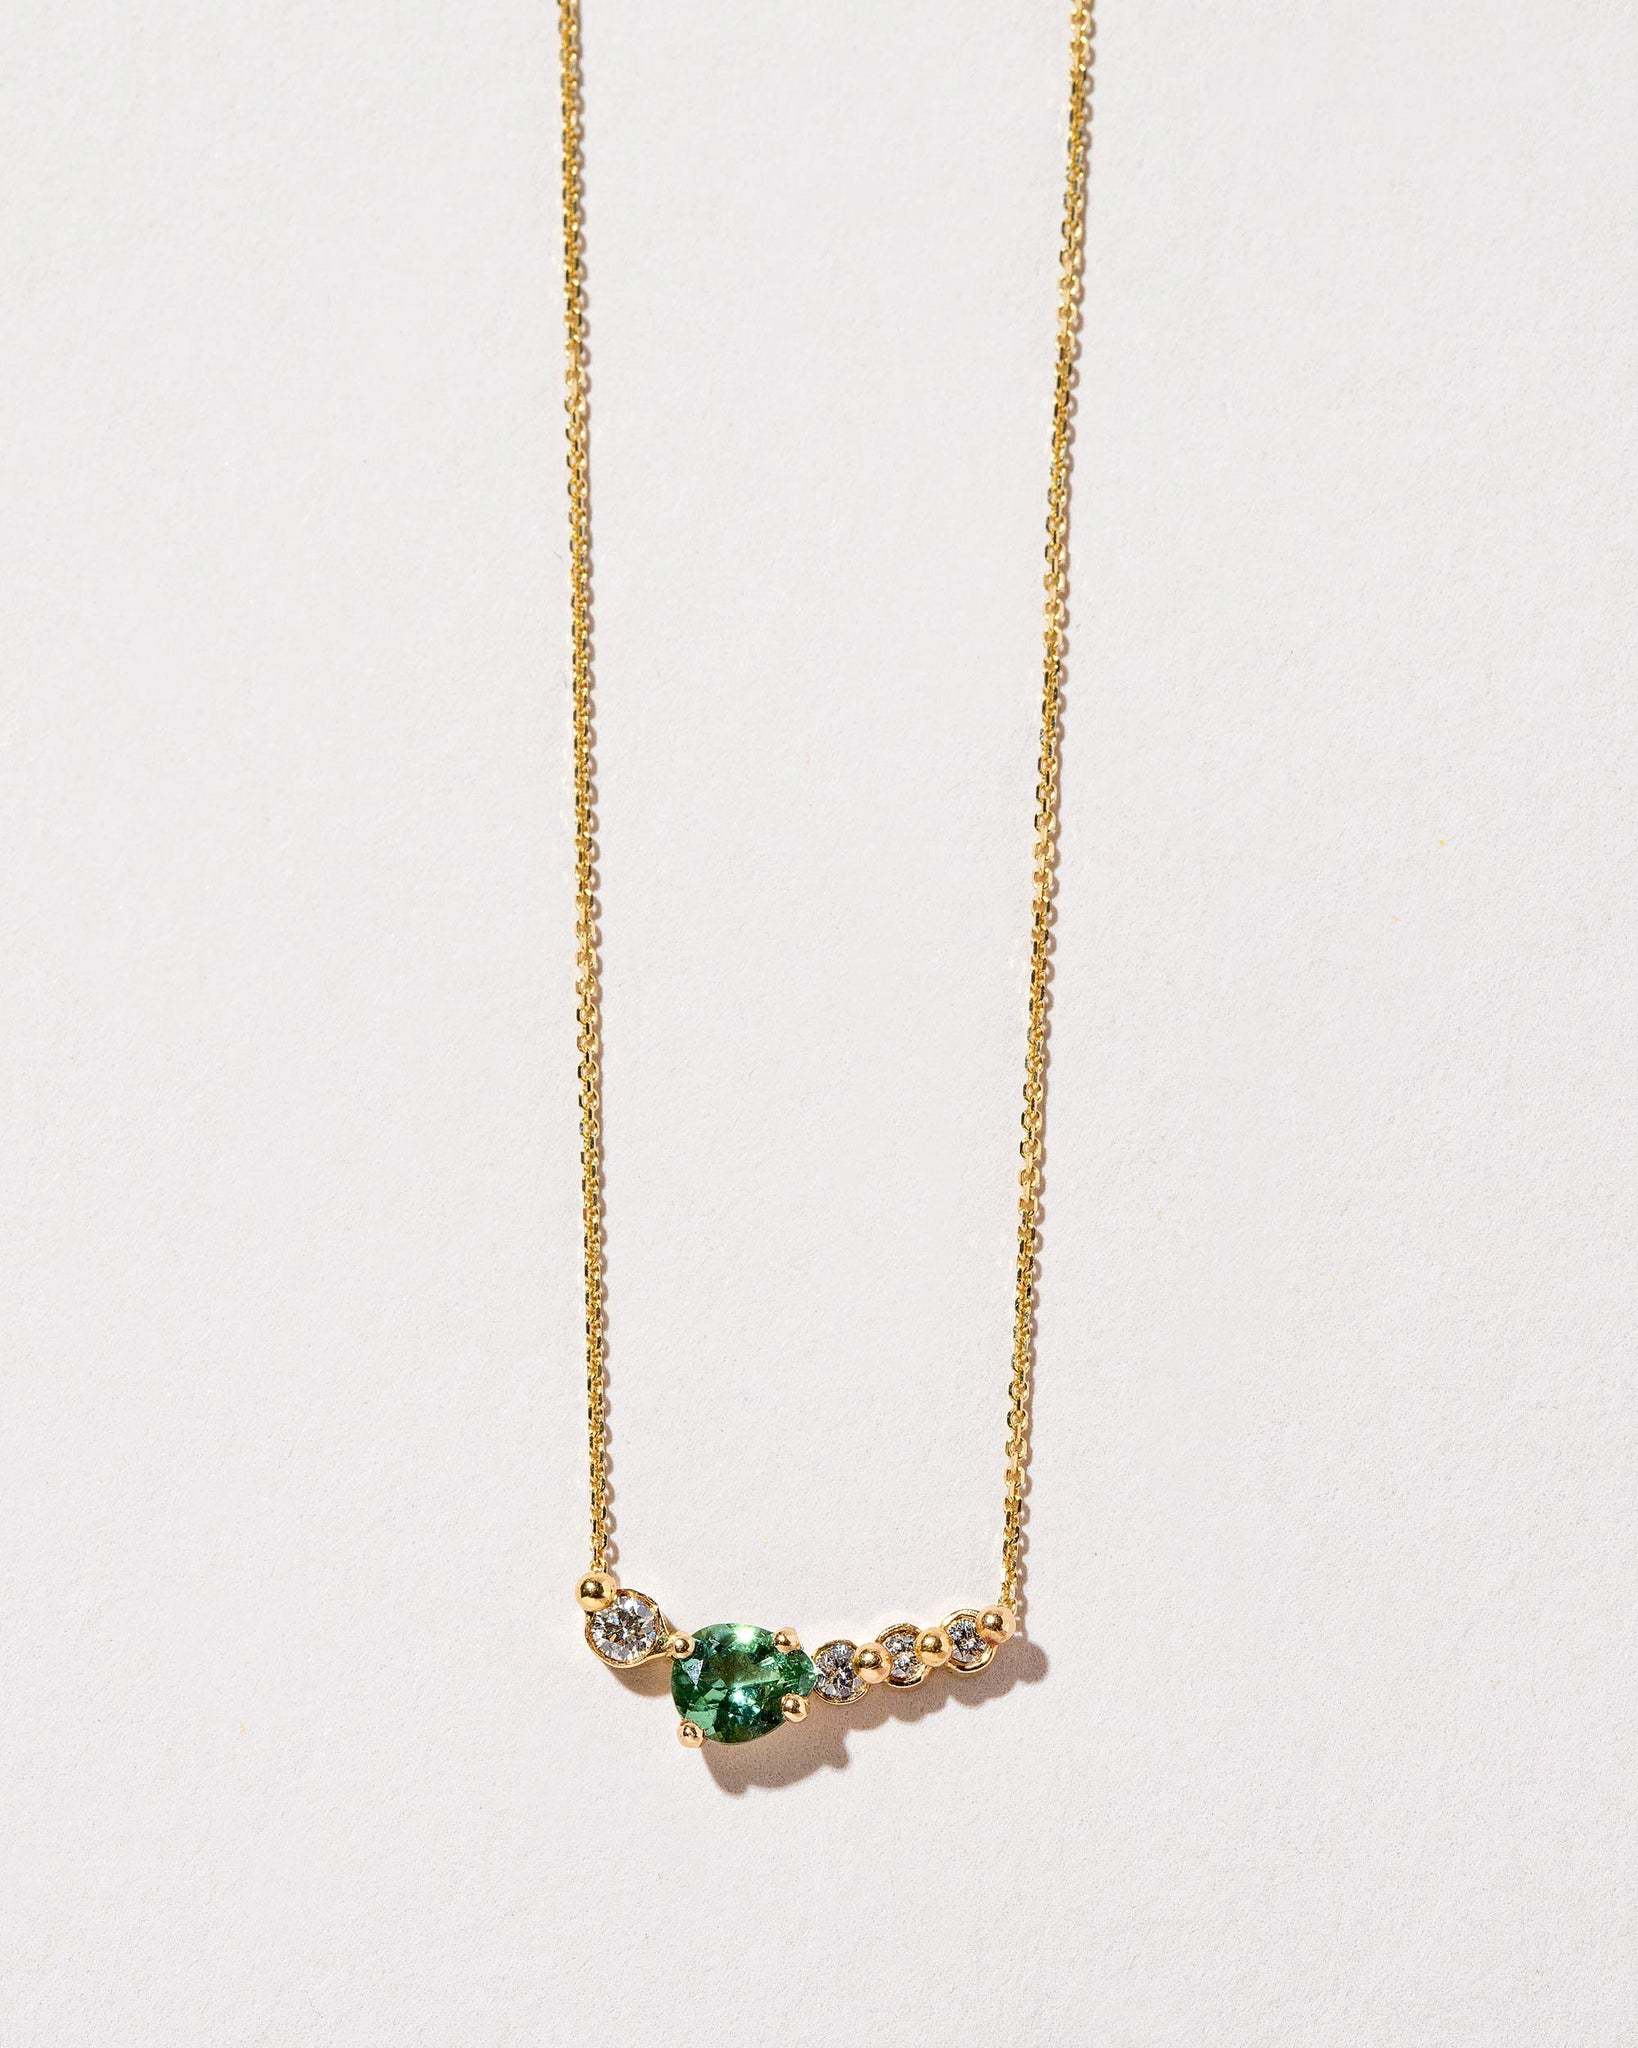 Teardrop Necklace Tourmaline / 18k Gold